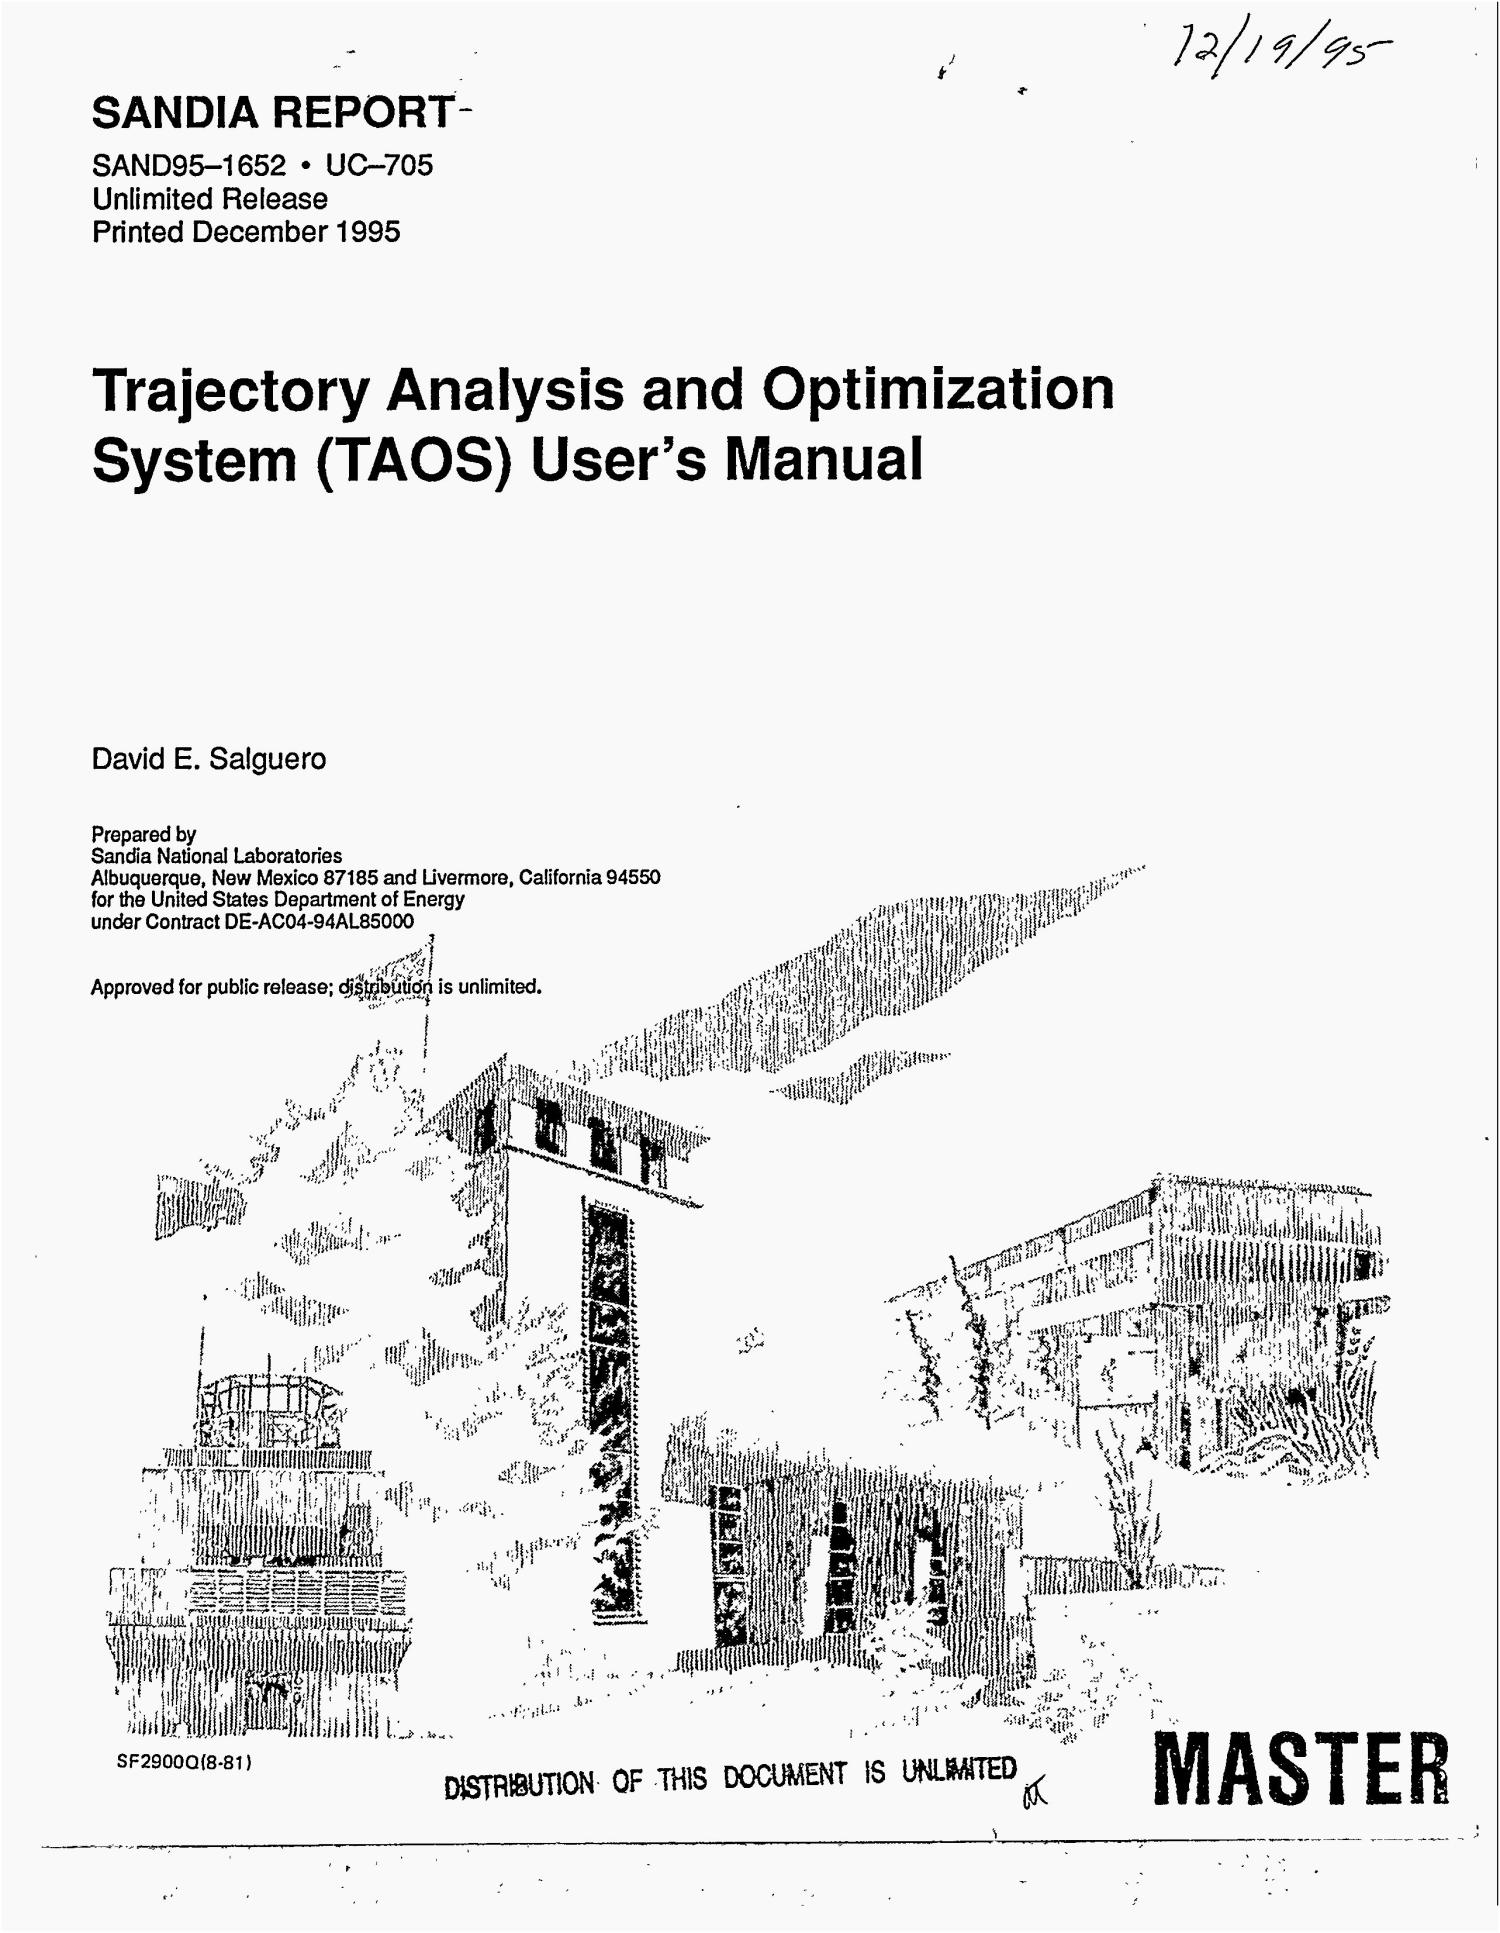 Trajectory analysis and optimization system (TAOS) user`s